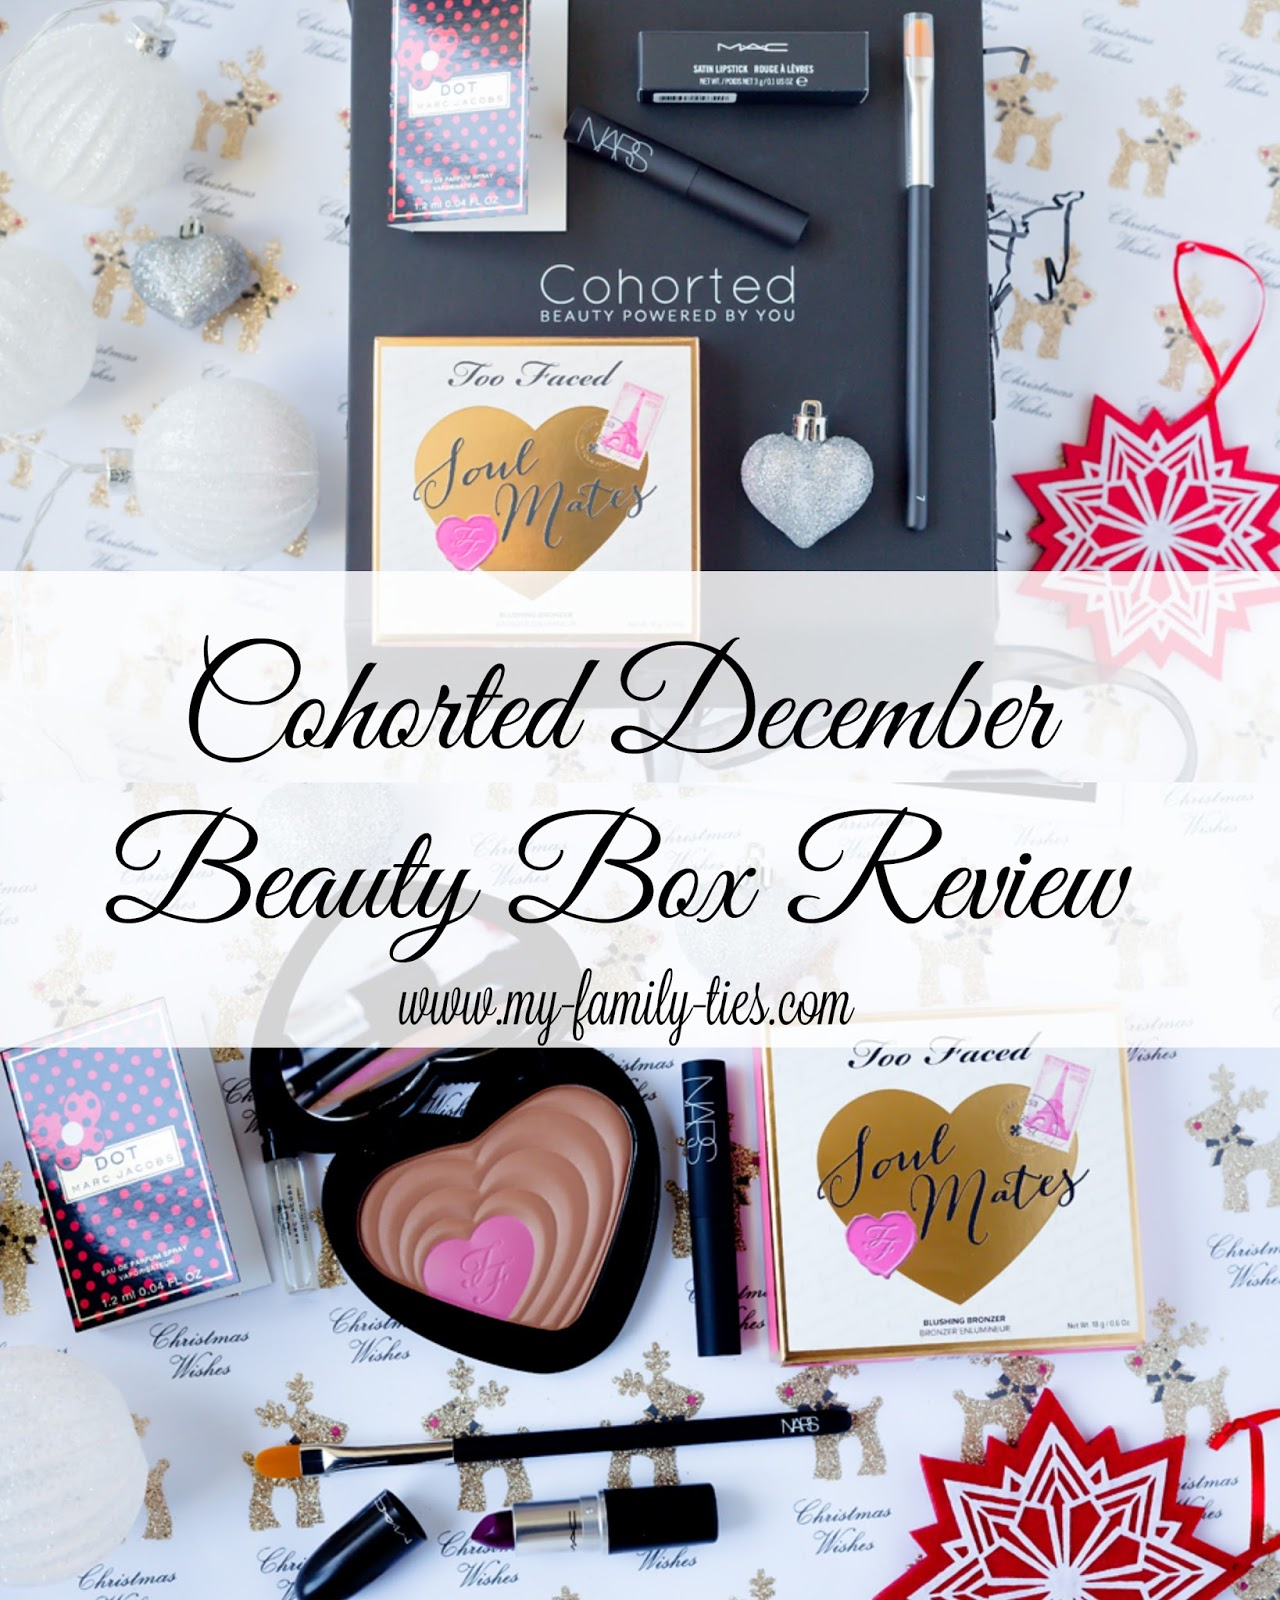 Cohorted Beauty Box December Review Photos by My Family Ties Blog www.my-family-ties.com